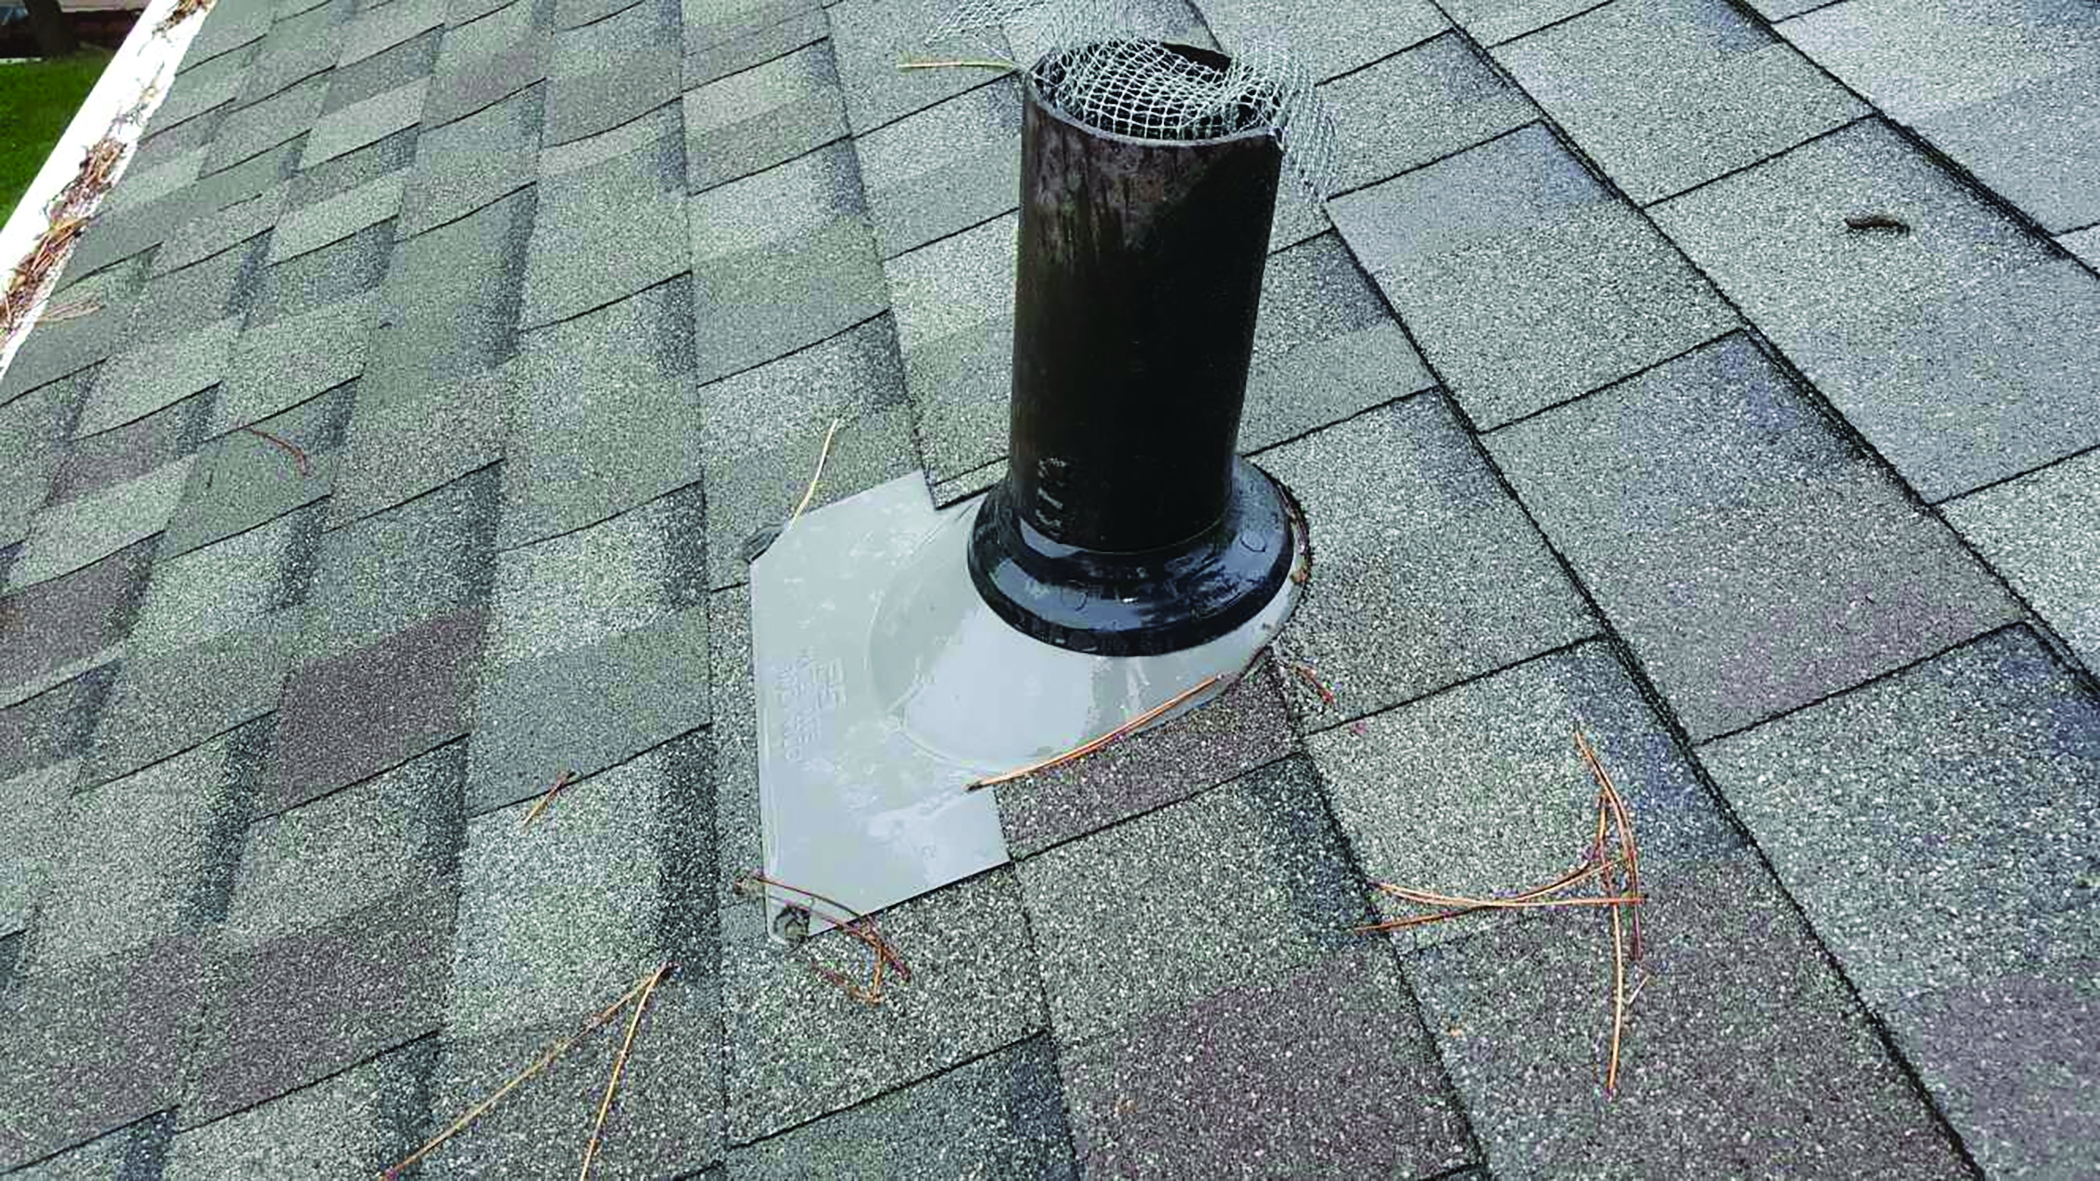 Plumbing boot on a roof